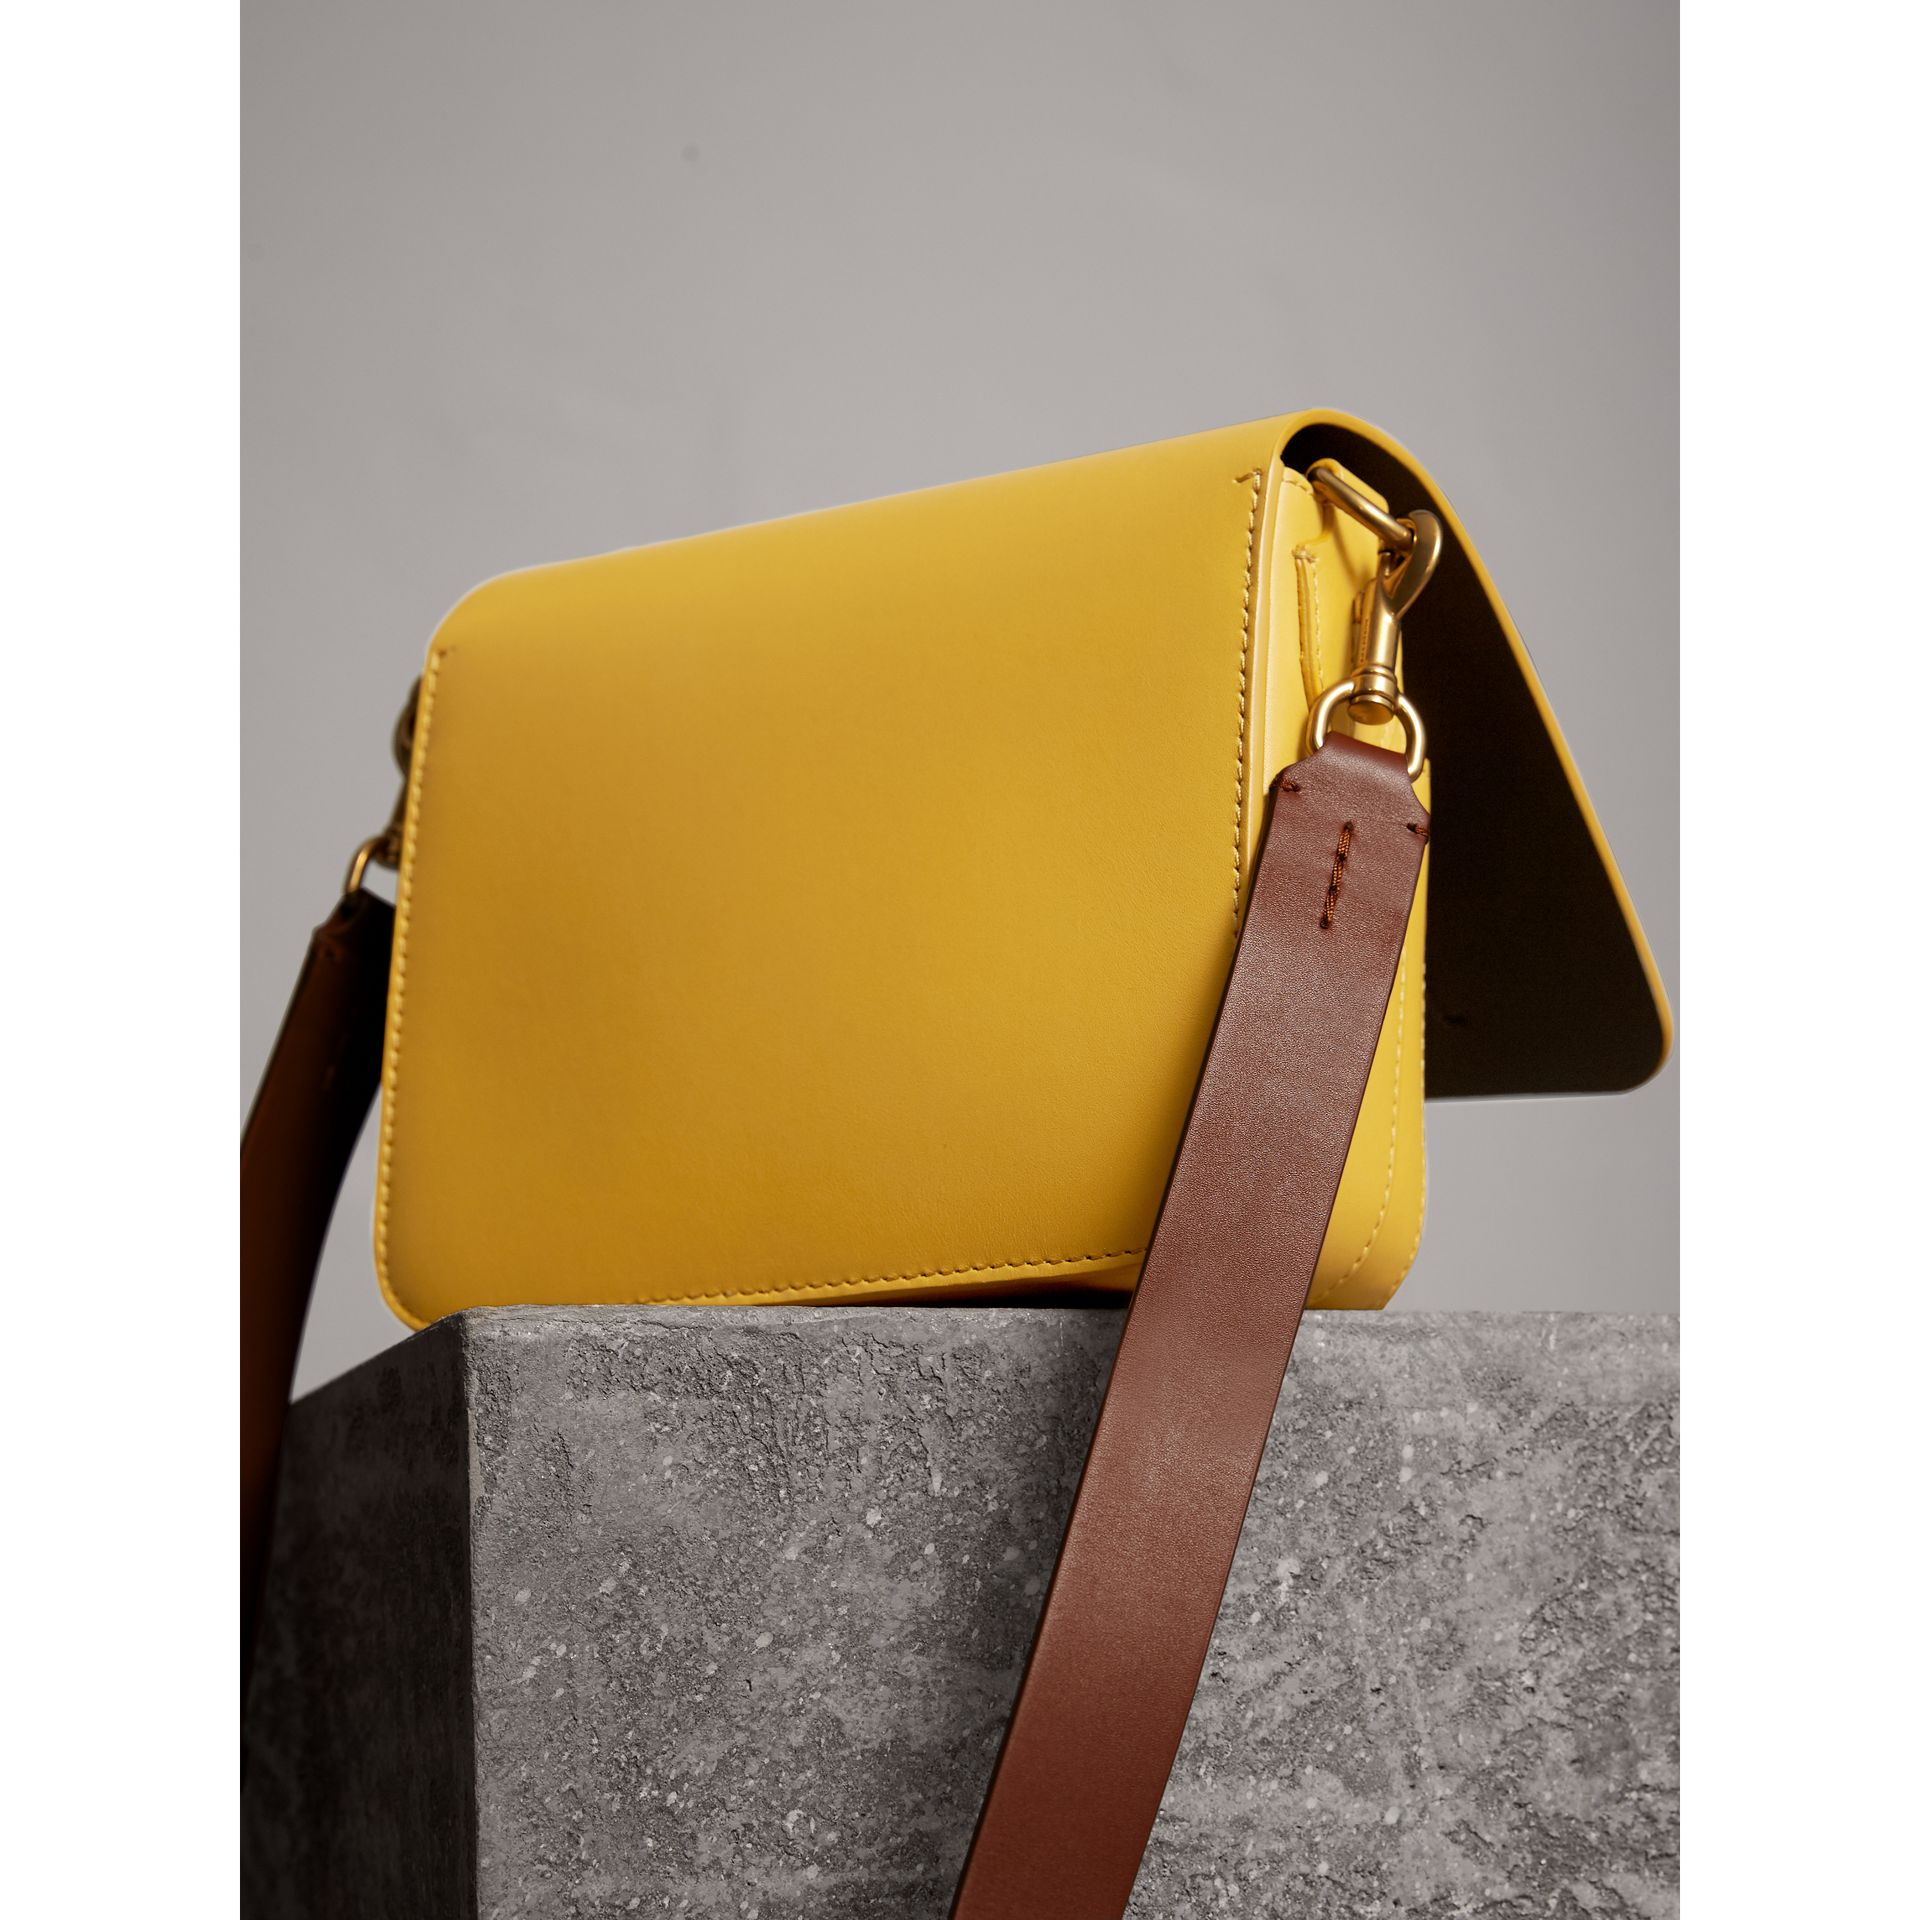 The Square Satchel in Leather in Larch Yellow - Women | Burberry United Kingdom - gallery image 3